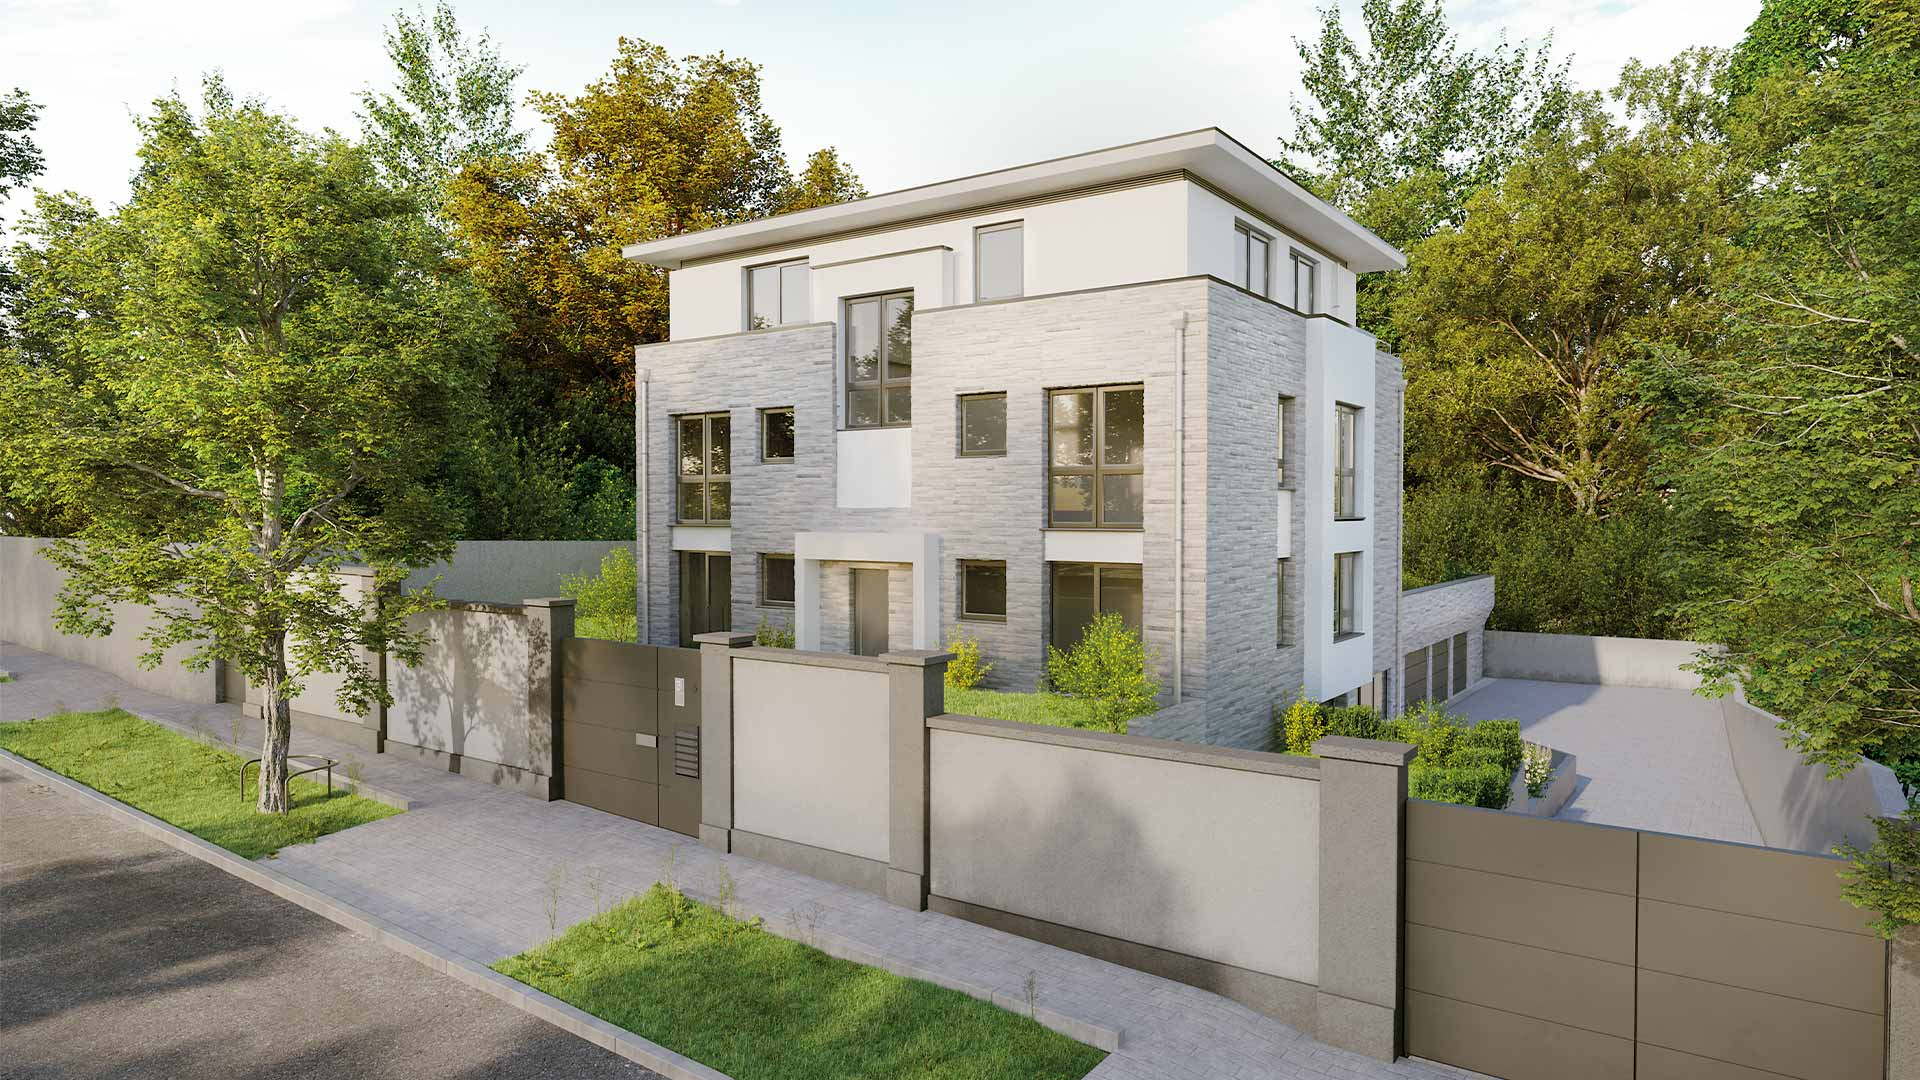 PARK-AVENUE_3_Raum_Visionen_Immobilien_marketing